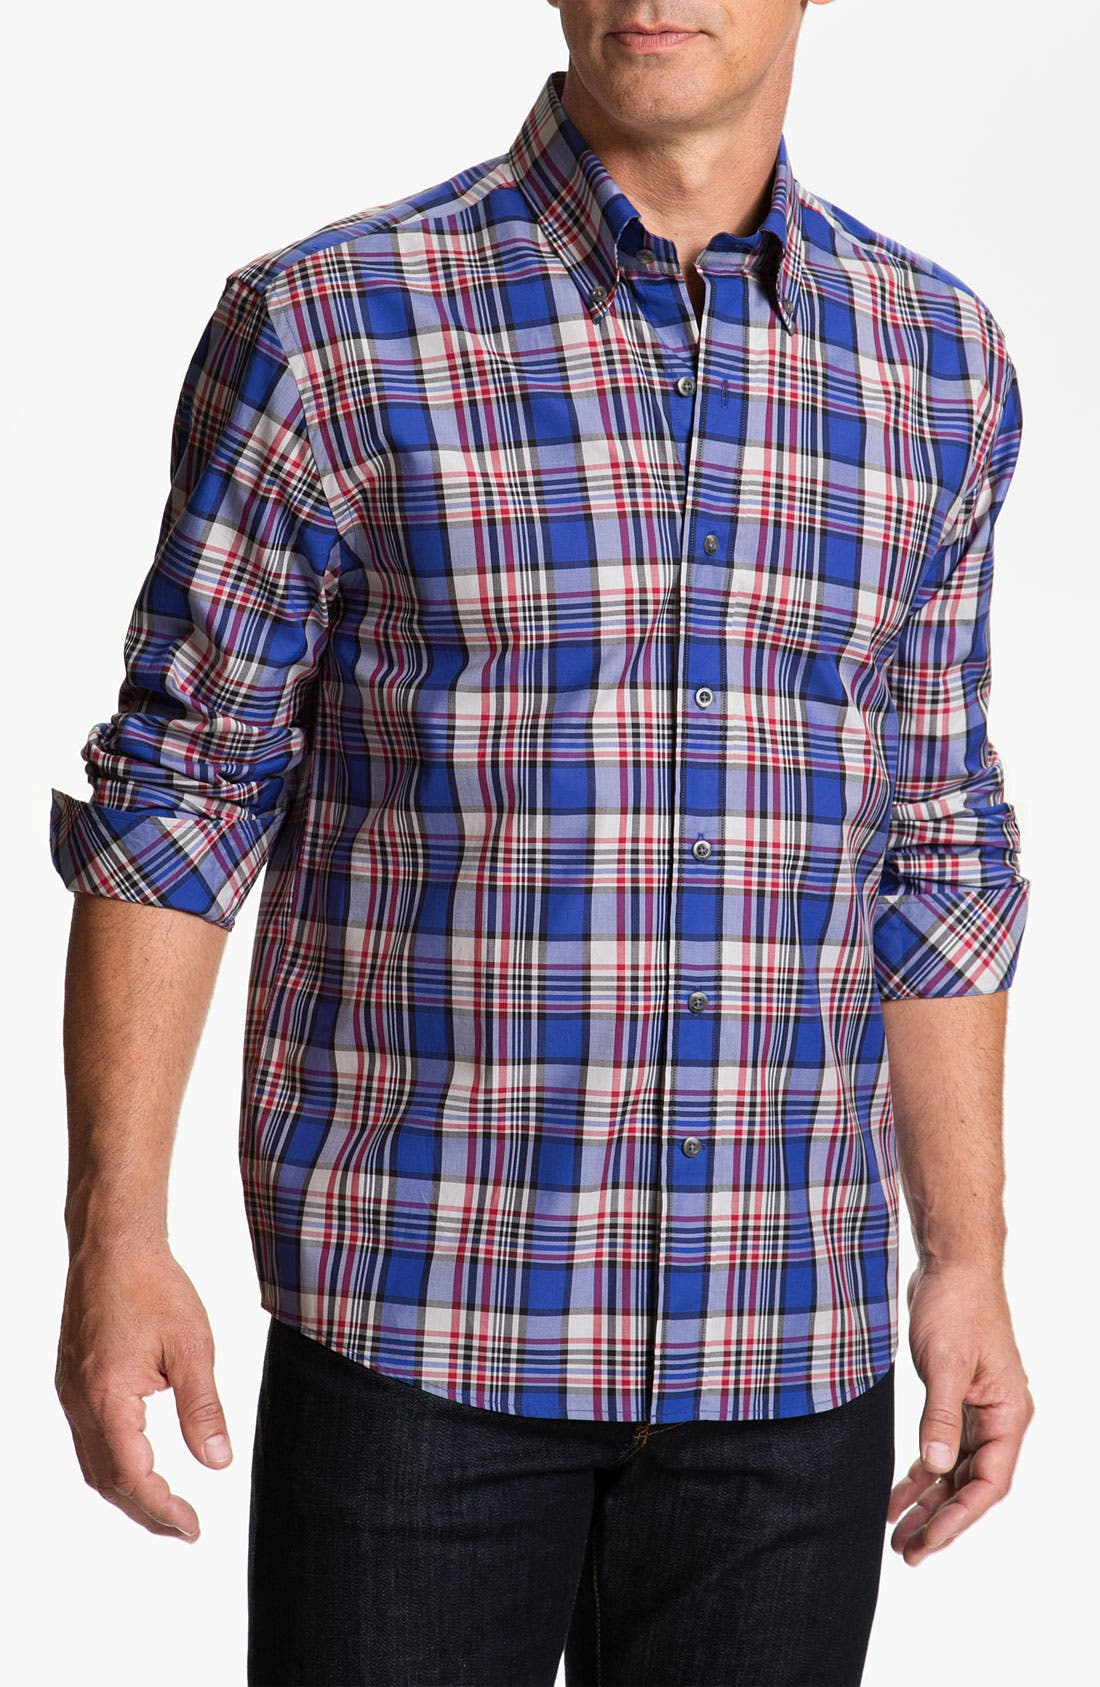 Main Image - Cutter & Buck 'Whistler' Plaid Woven Shirt